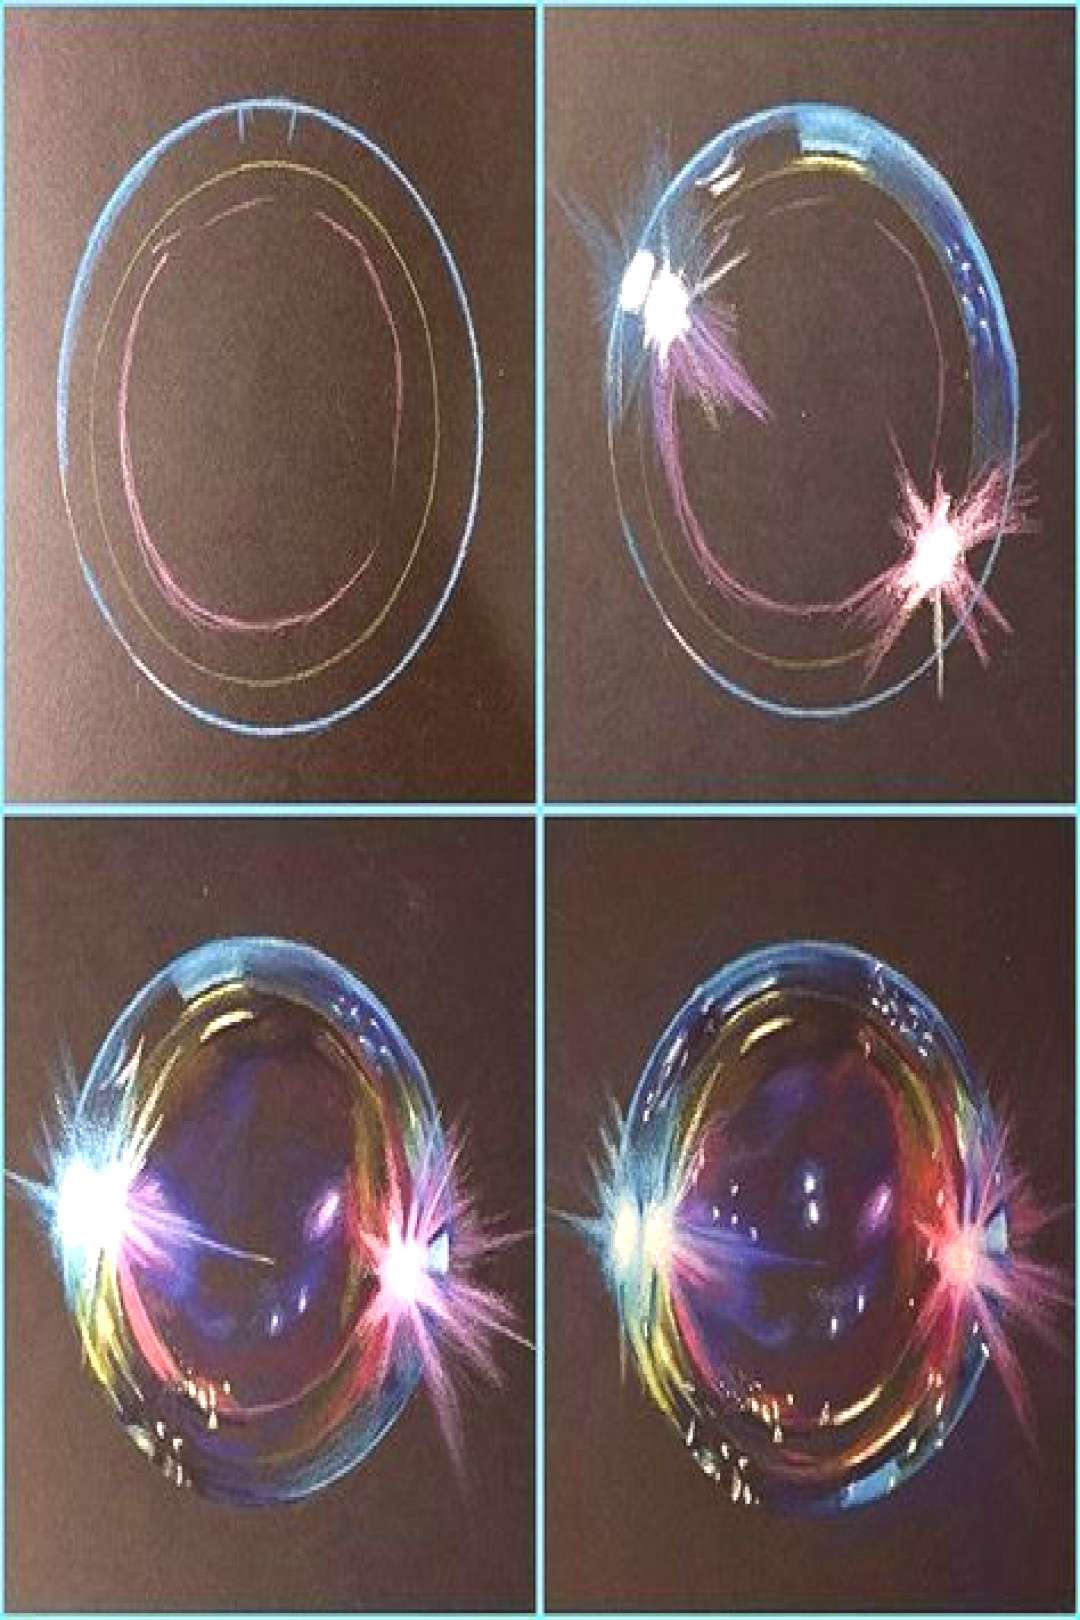 Progress pictures of my bubble drawing! Prismacolor pens on Strathmore Artagain ... - Paint Emma Fi